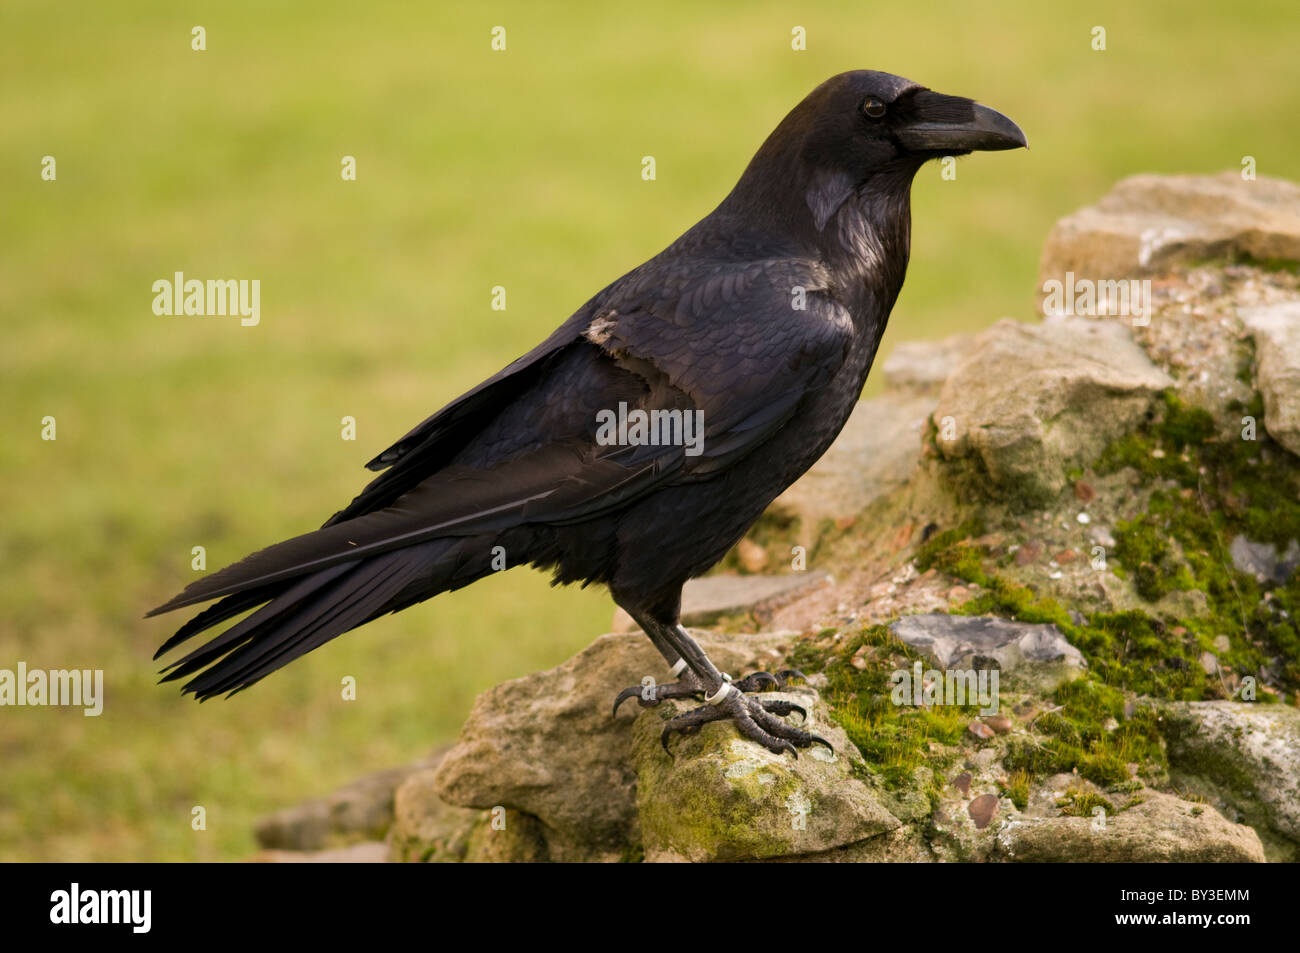 RAVEN Corvus corax Bird with clipped wing feathers to prevent flight Tower of London, UK - Stock Image